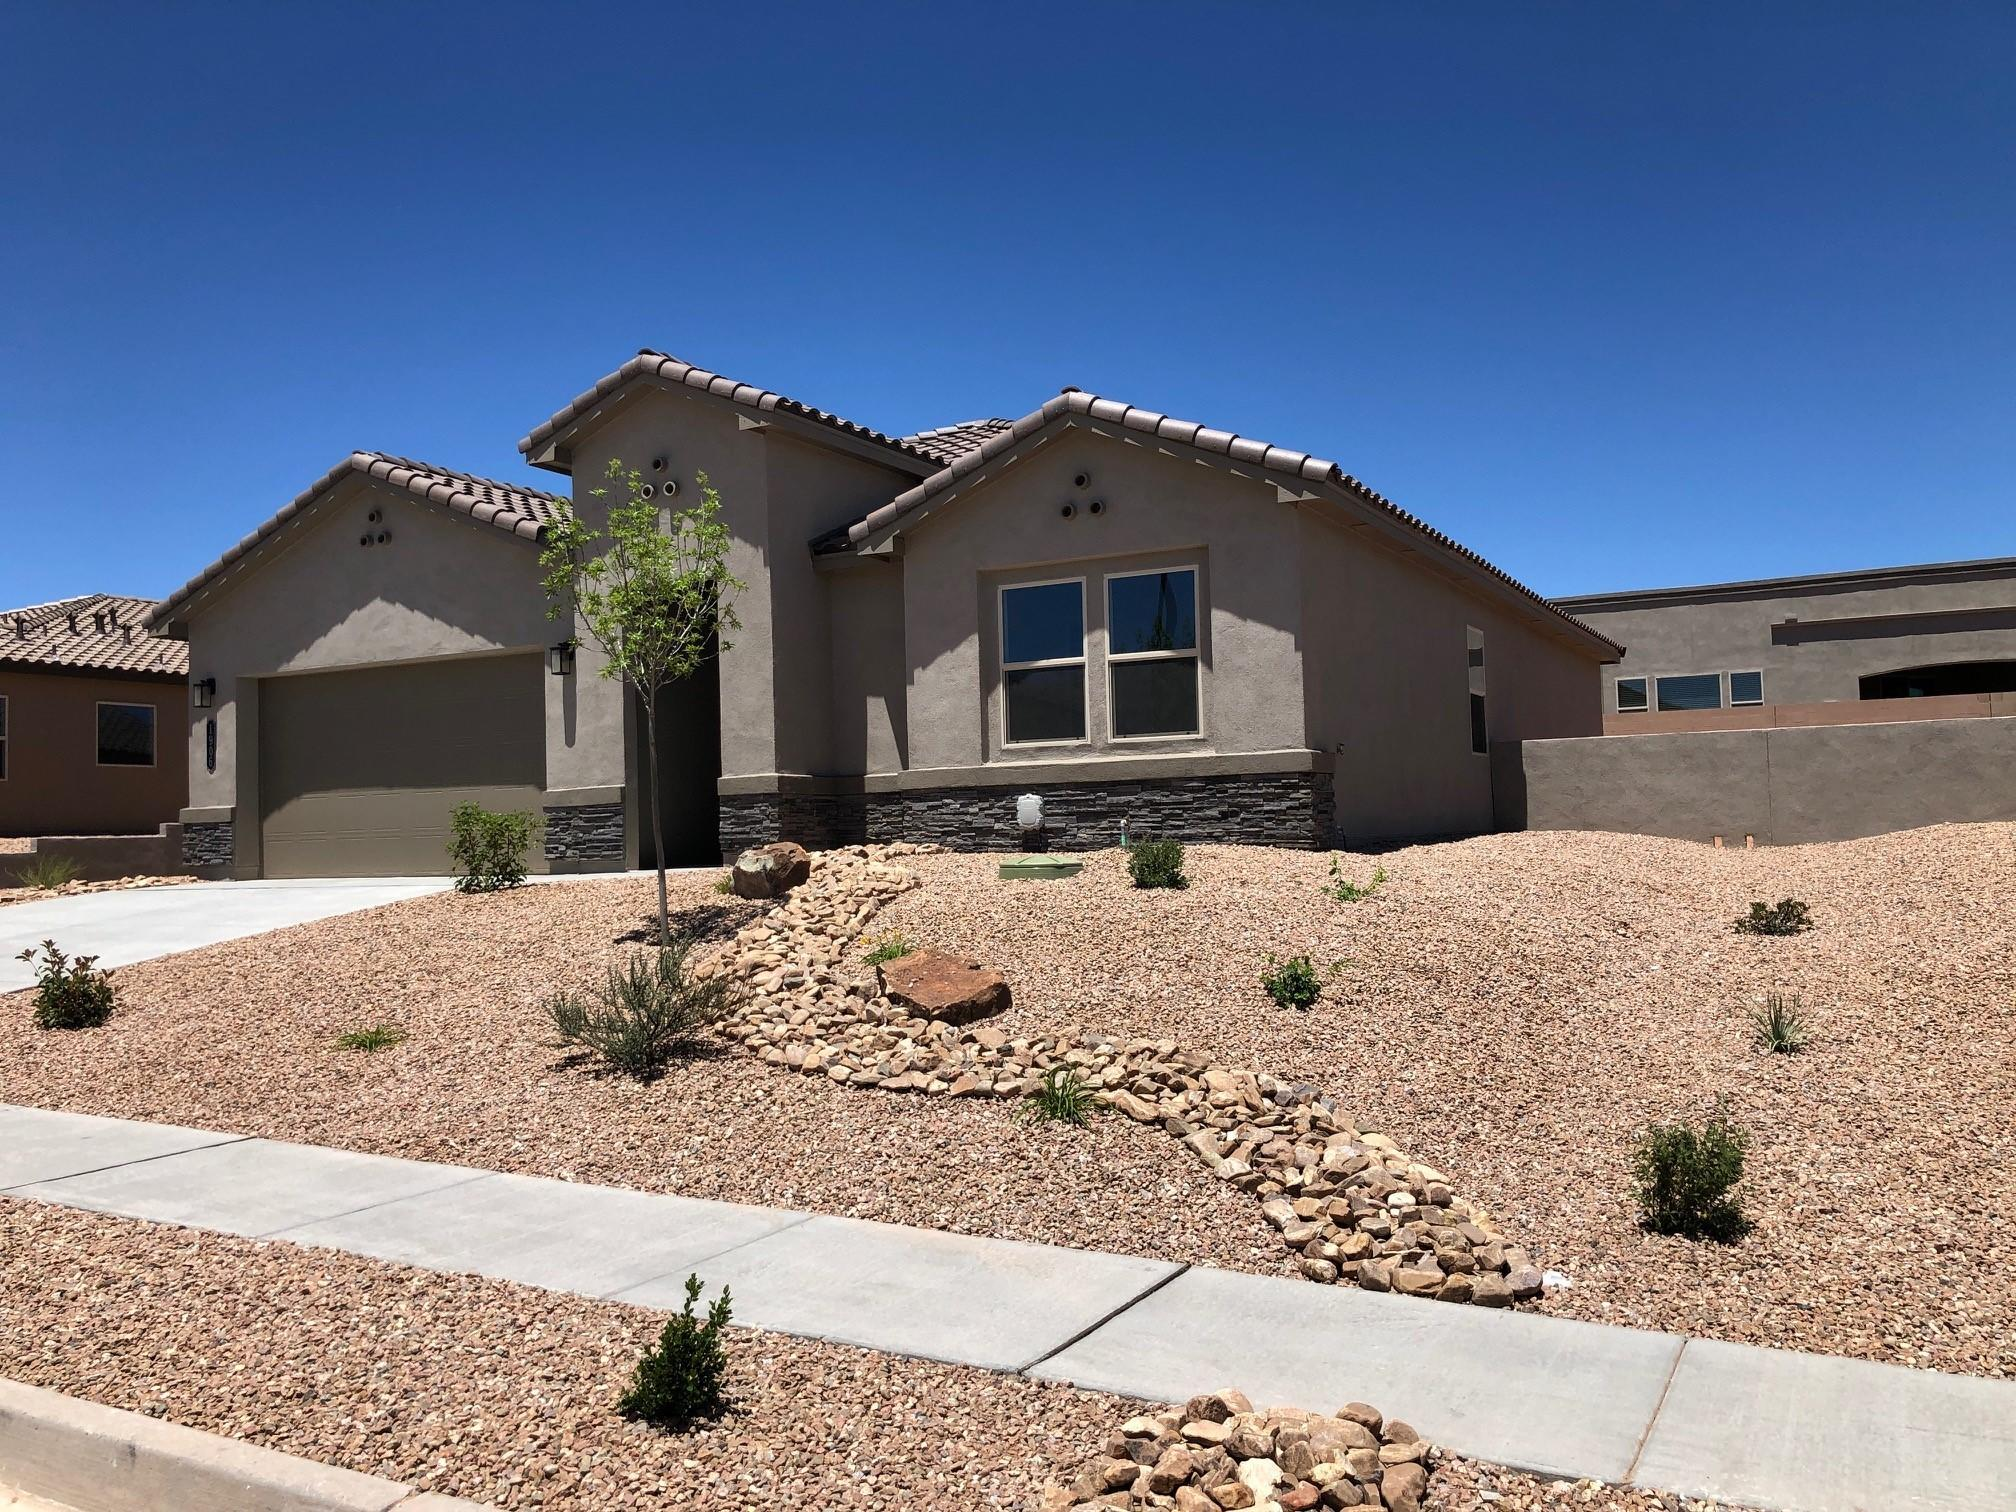 Imagine, living the good life in Mariposa, a 6,500 acre community with 2,300 acres of open space, nature trails, community center, indoor and outdoor pools, fitness center & parks. Mariposa is a community in Rio Rancho with extra large lots and space to breath! This wonderful home features the luxuries of a custom home. A chef's delight kitchen with large granite island stainless Whirlpool appliances (gas cooktop & built in wall oven & microwave). Home has 18'' ceramic tile throughout, except bedrooms. Fireplace in family room to entertain. Home feels much bigger, light & bright with 8 ft doors and windows looking out to large covered patio. This is a SMART HOME and New Mexico Green Built Certified. Stop by model home to see furnished home with similar features.